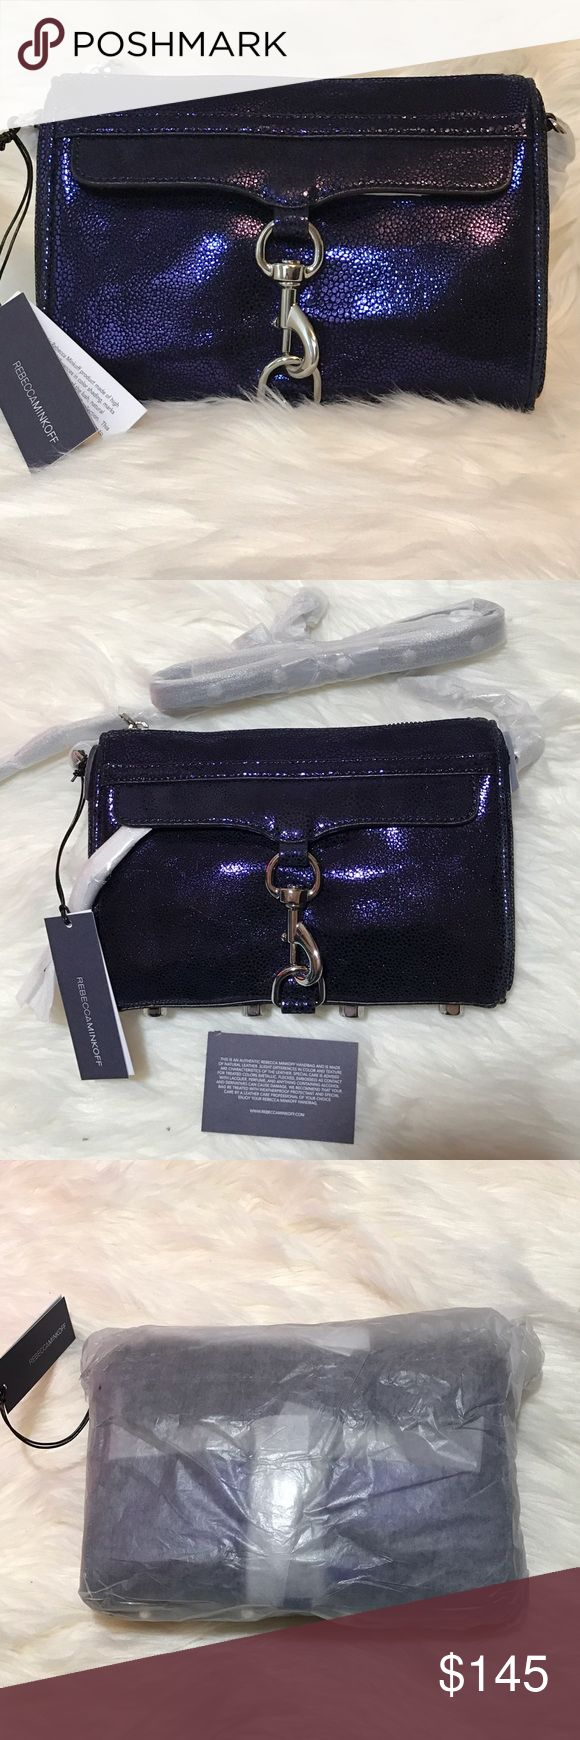 Rebecca Minkoff Mini MAC This is a brand new, still in packaging from the factory, gorgeous mini mac! Silver hardware. This is suede embossed with a metallic deep purple. It is truly a stunning color! Rebecca Minkoff Bags Crossbody Bags